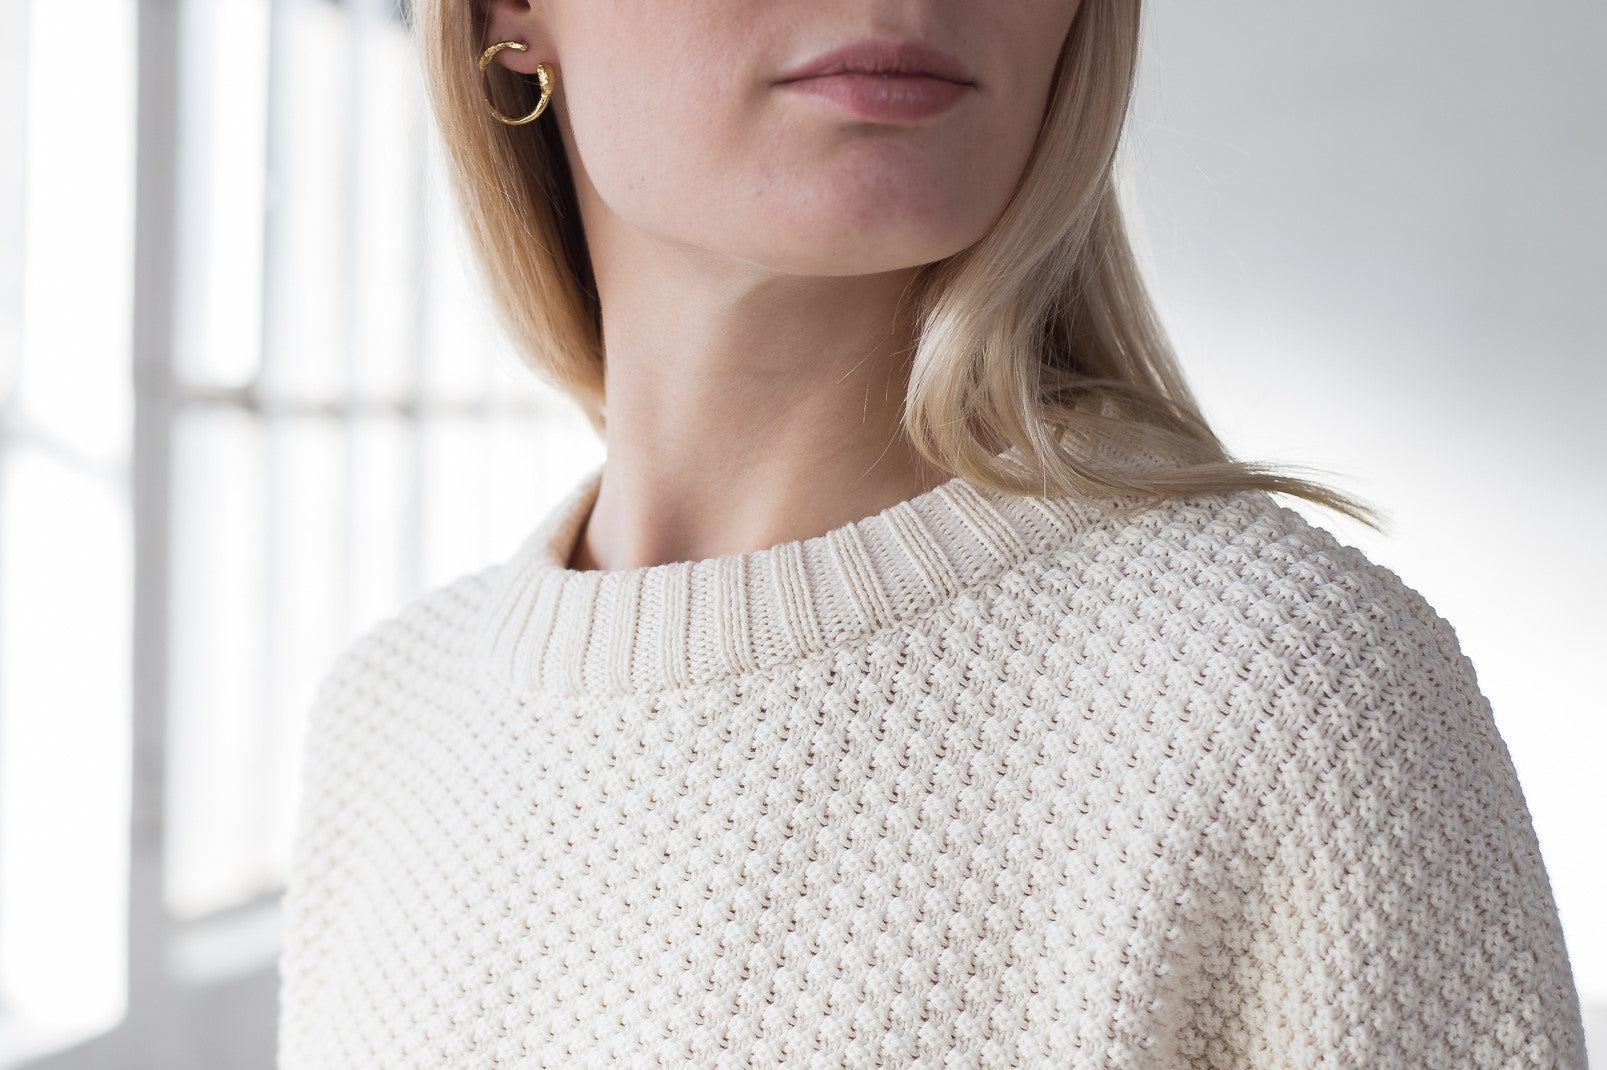 The model wears a natural sustainable organic cotton knitted rice cubes pullover with low neck.